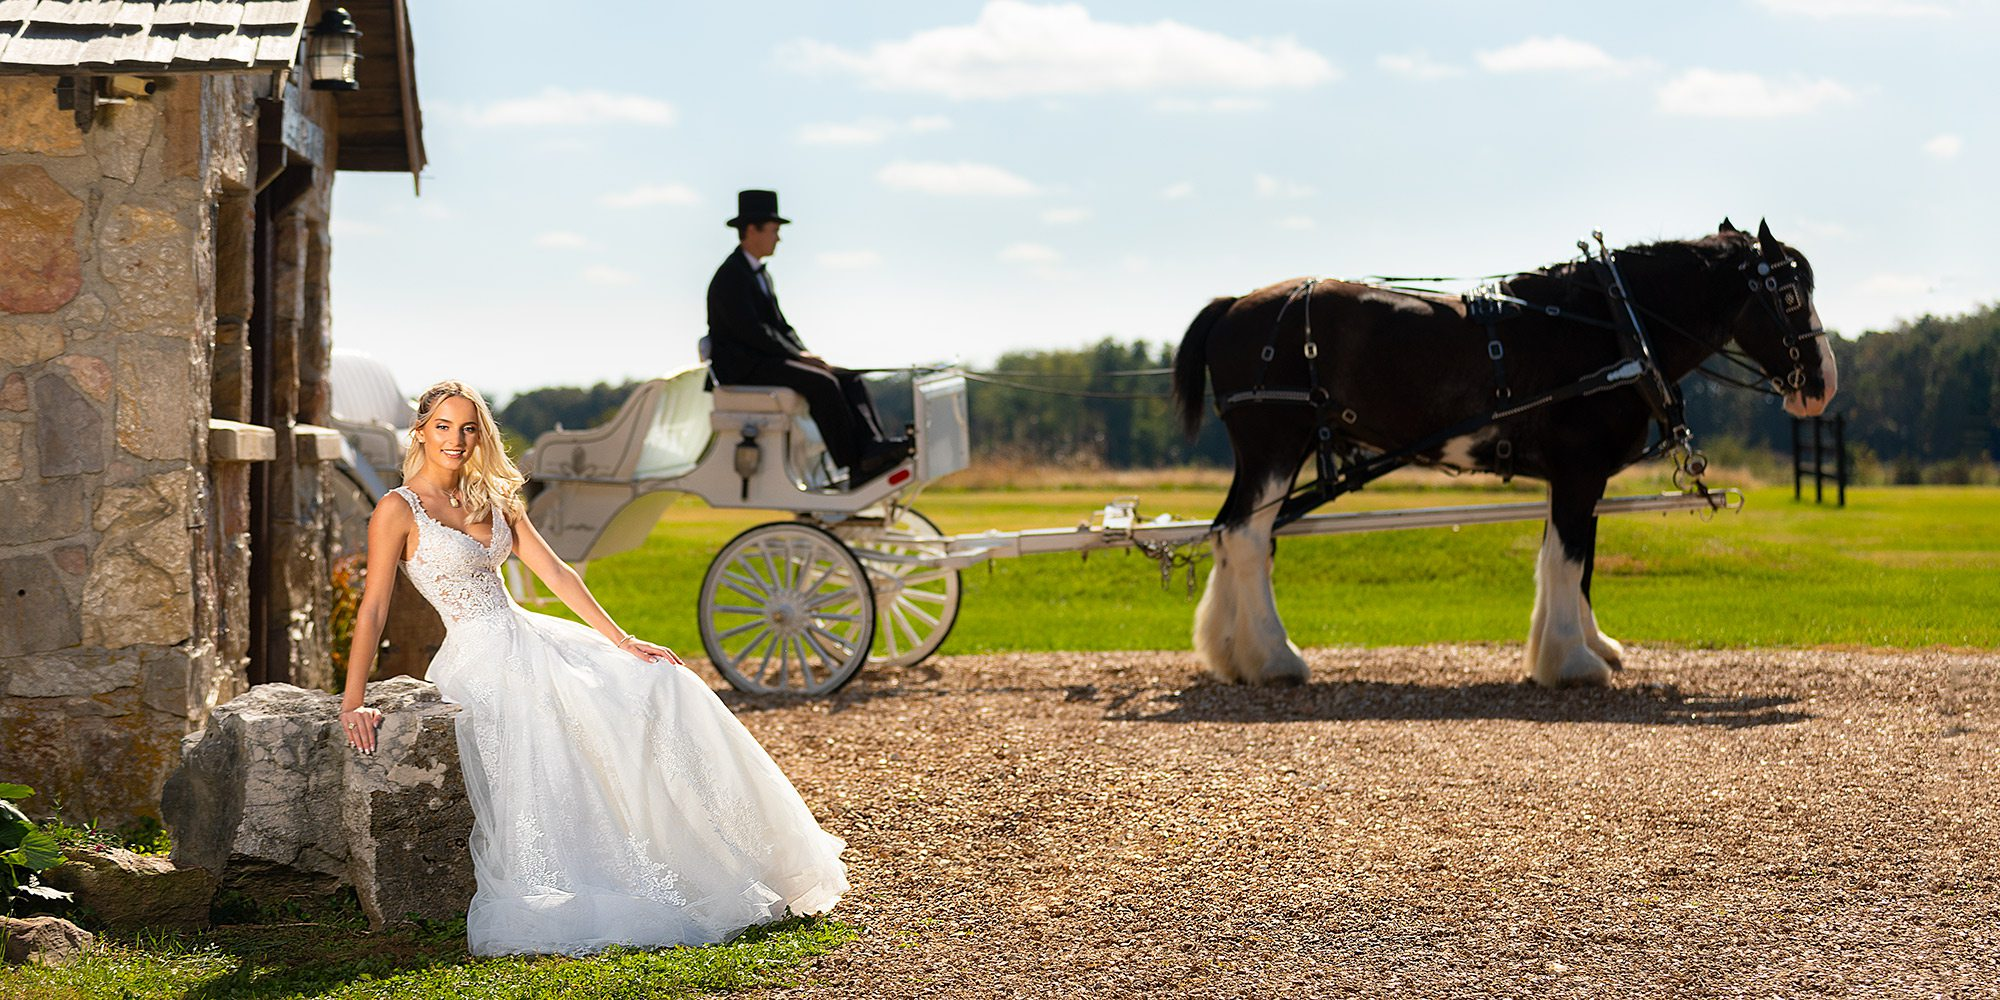 Alita gown with lace bodice with a horse and buggy by Shires For Hire